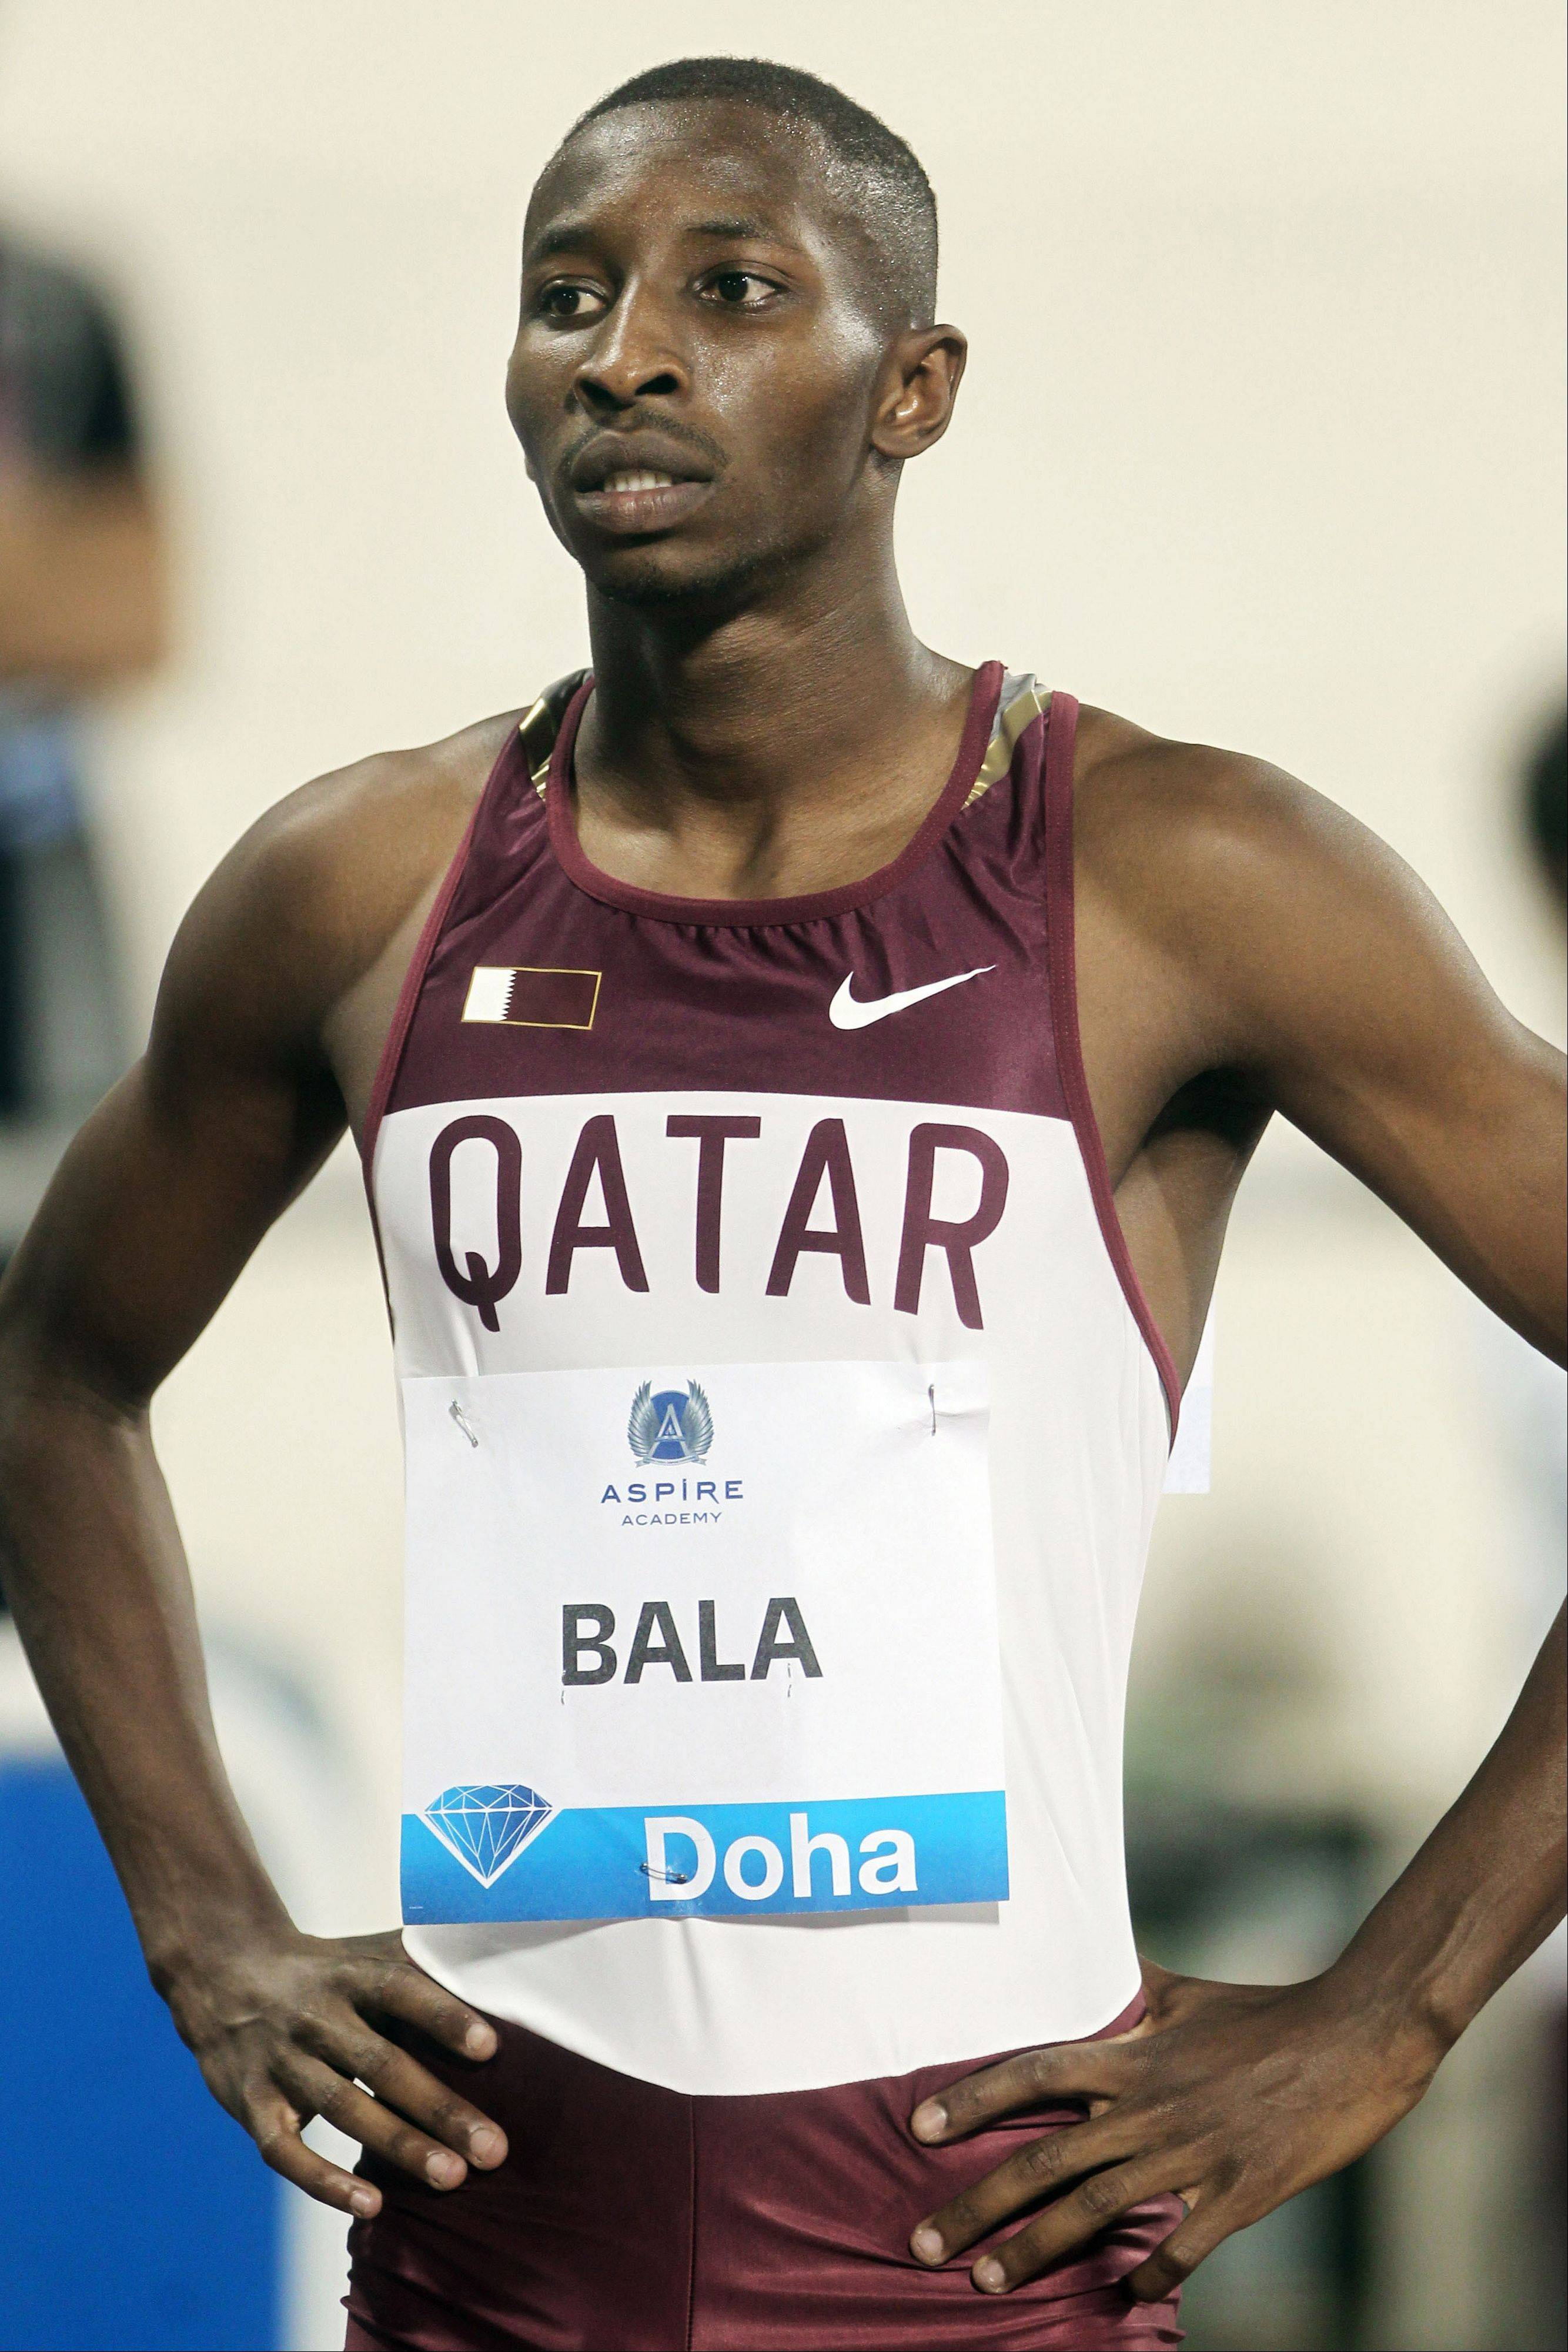 In this Friday, May 11, 2012 file photo, Qatari athlete Musaab Abdulrahman Bala prepares for a race of Qatar Diamond League in Doha, Qatar. Despite their vast wealth and the fact state-owned companies splash out billions of dollars attracting high-profile sporting events, these Middle Eastern countries have collectively managed only eight Olympic medals.